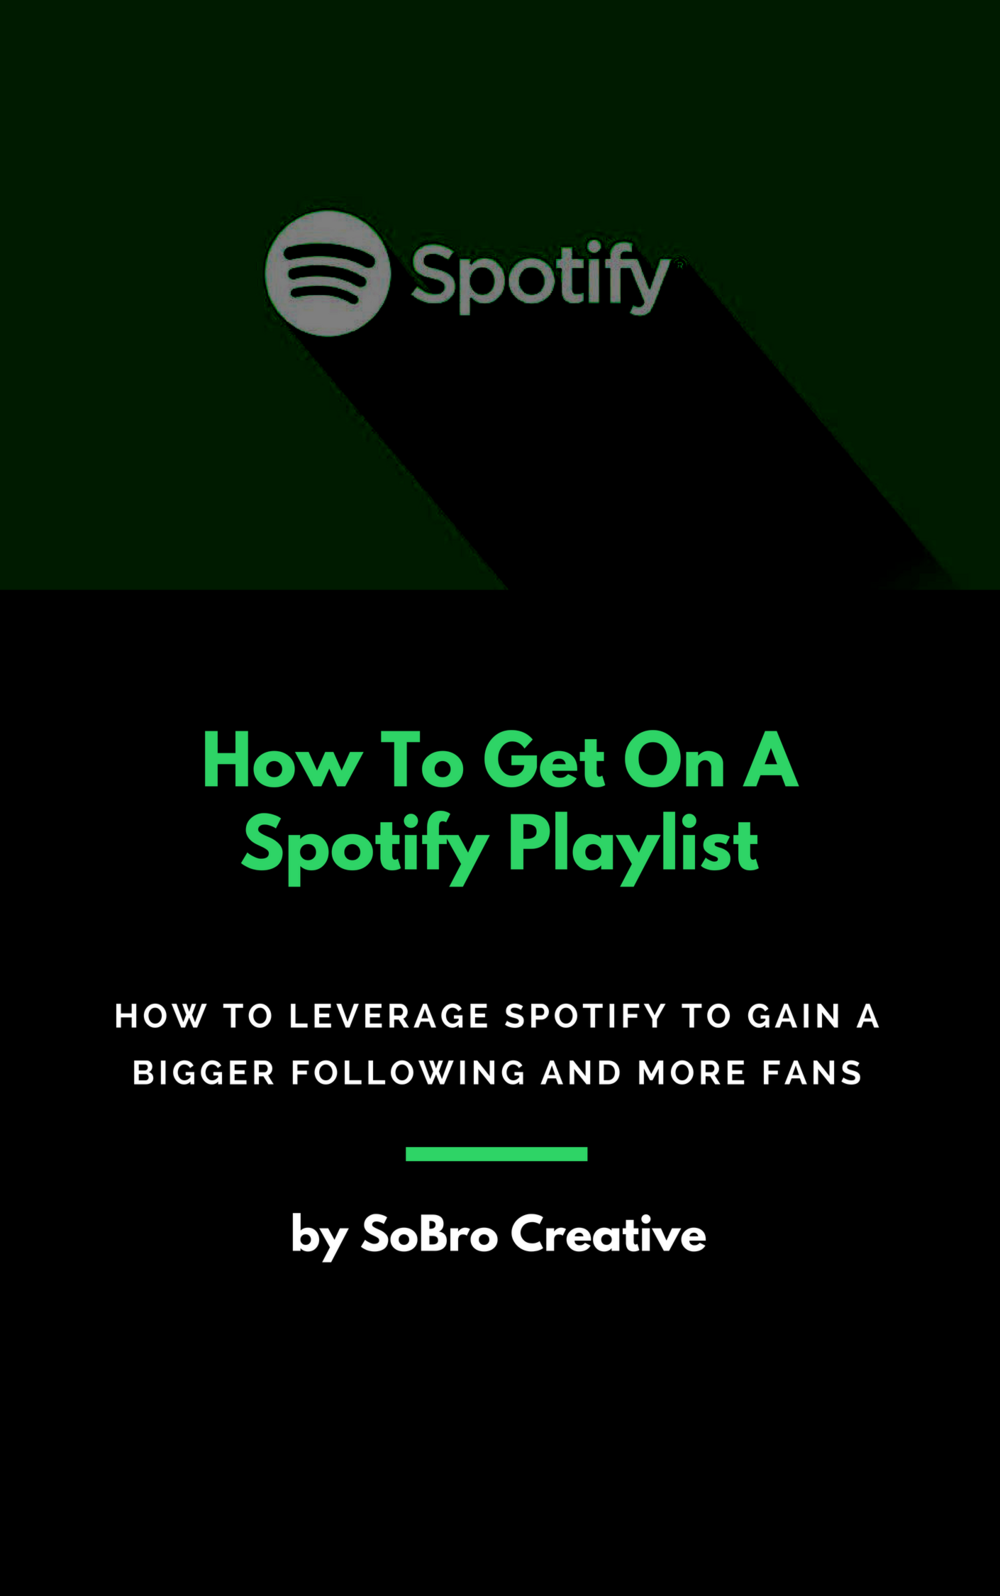 How To Guide To Spotify (1).png